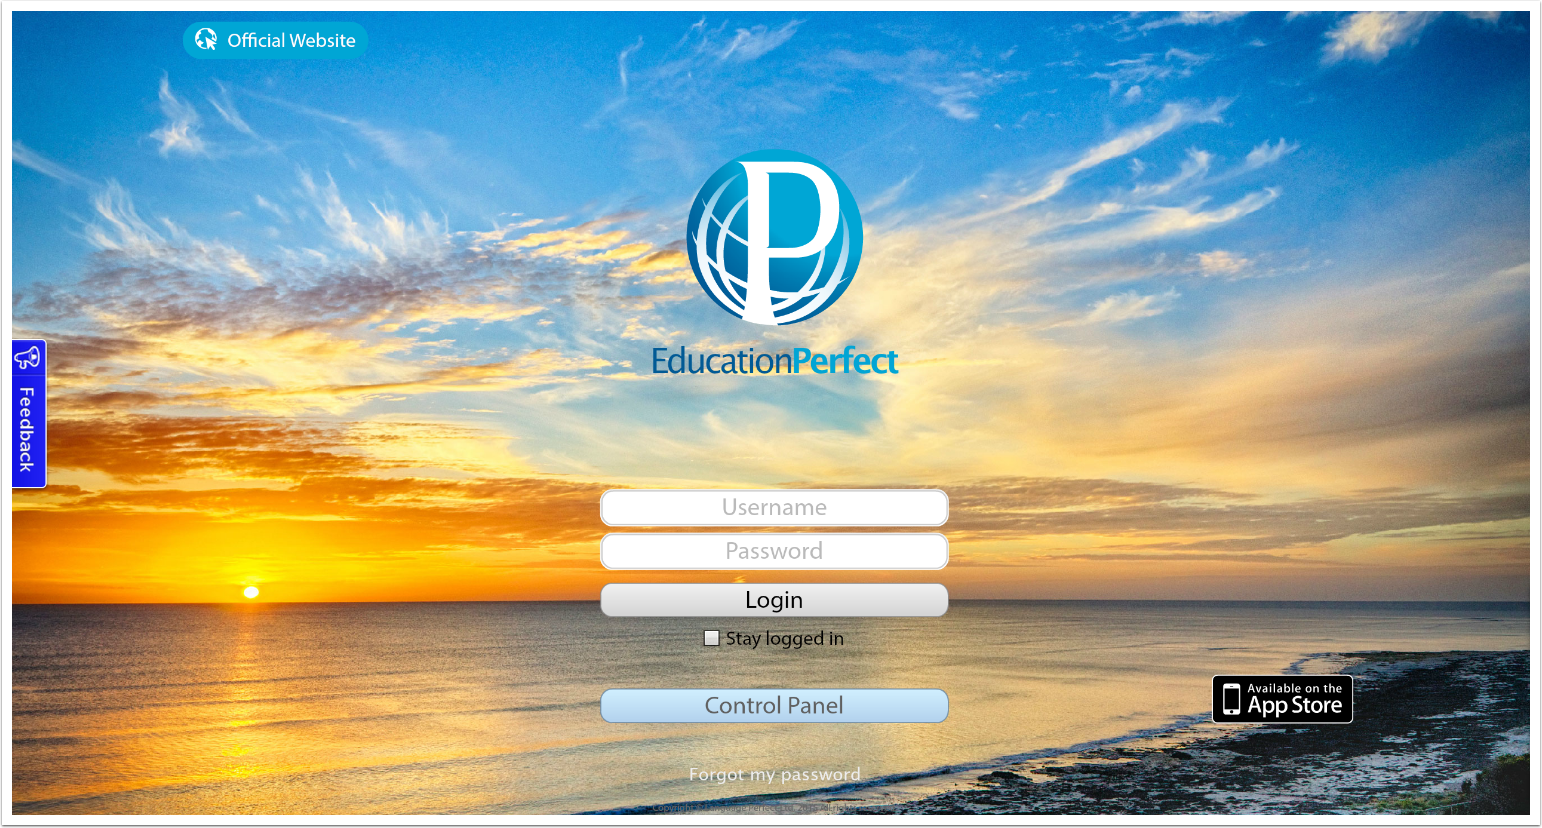 To get started, go to www.educationperfect.com/login and enter your login details.